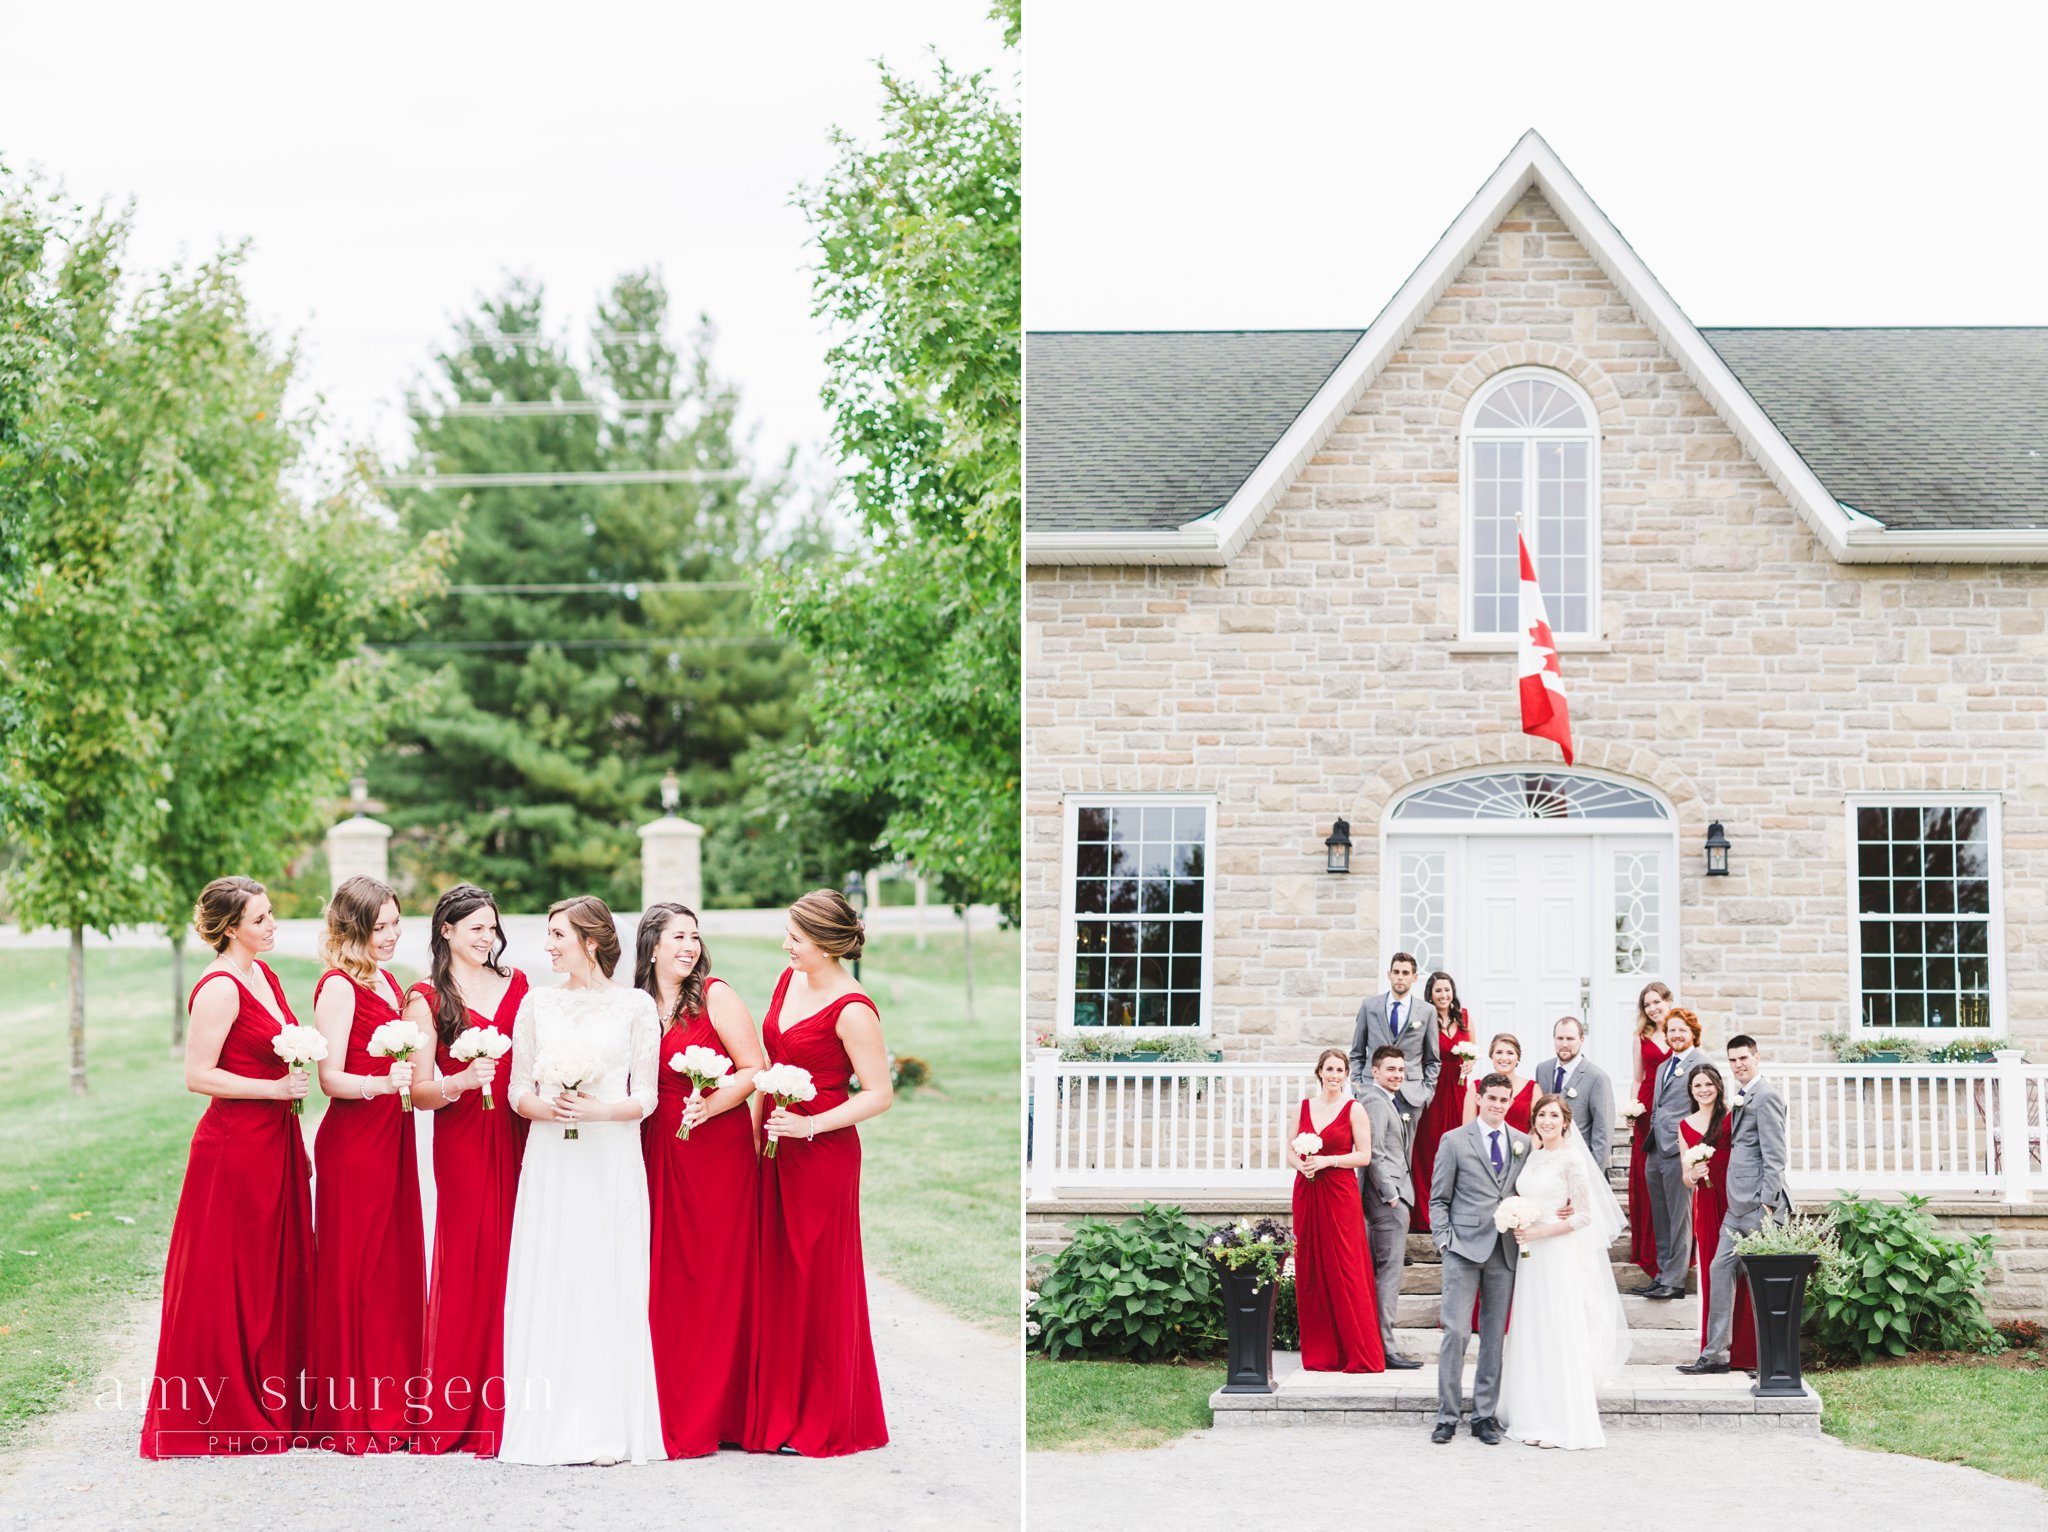 This heritage home was a beautiful site for a wedding at the alpaca farm wedding